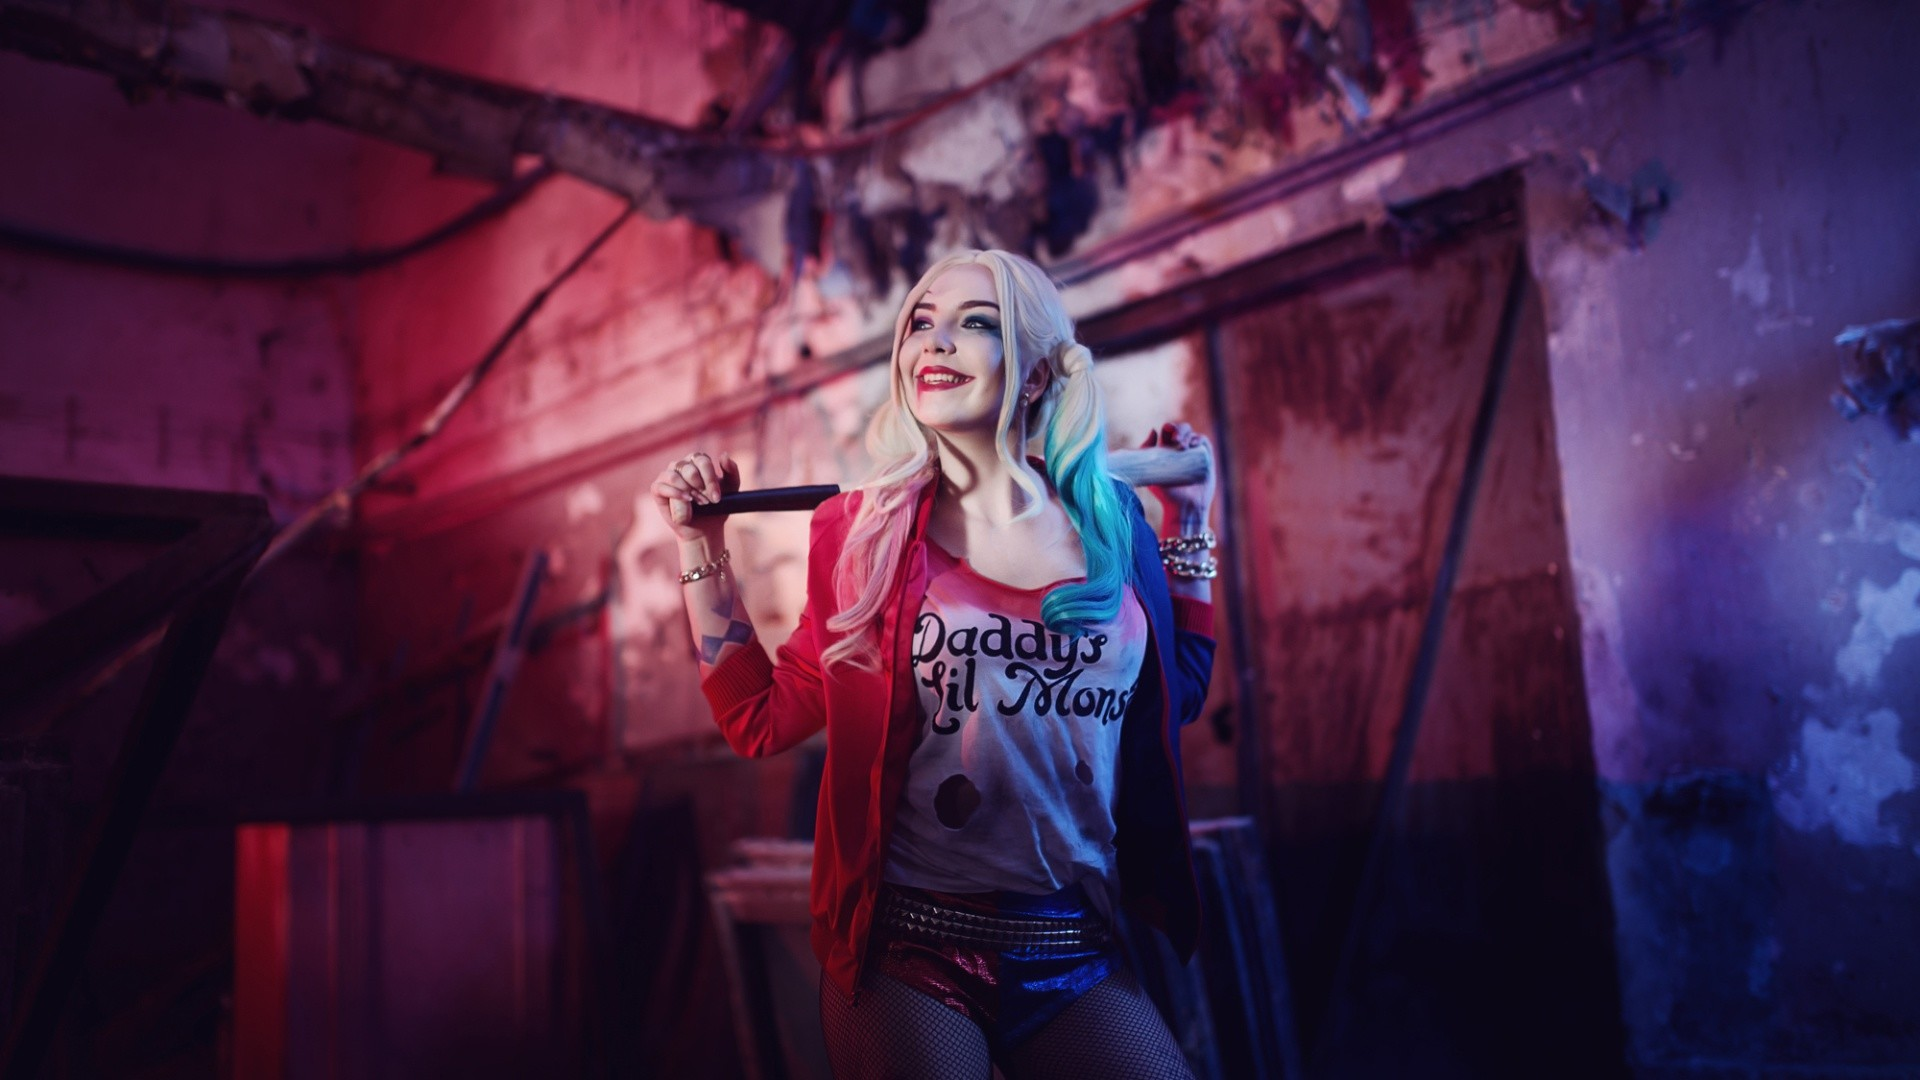 1920x1080 Suicide Squad Harley Quinn Cosplay Costume Wallpaper 12524